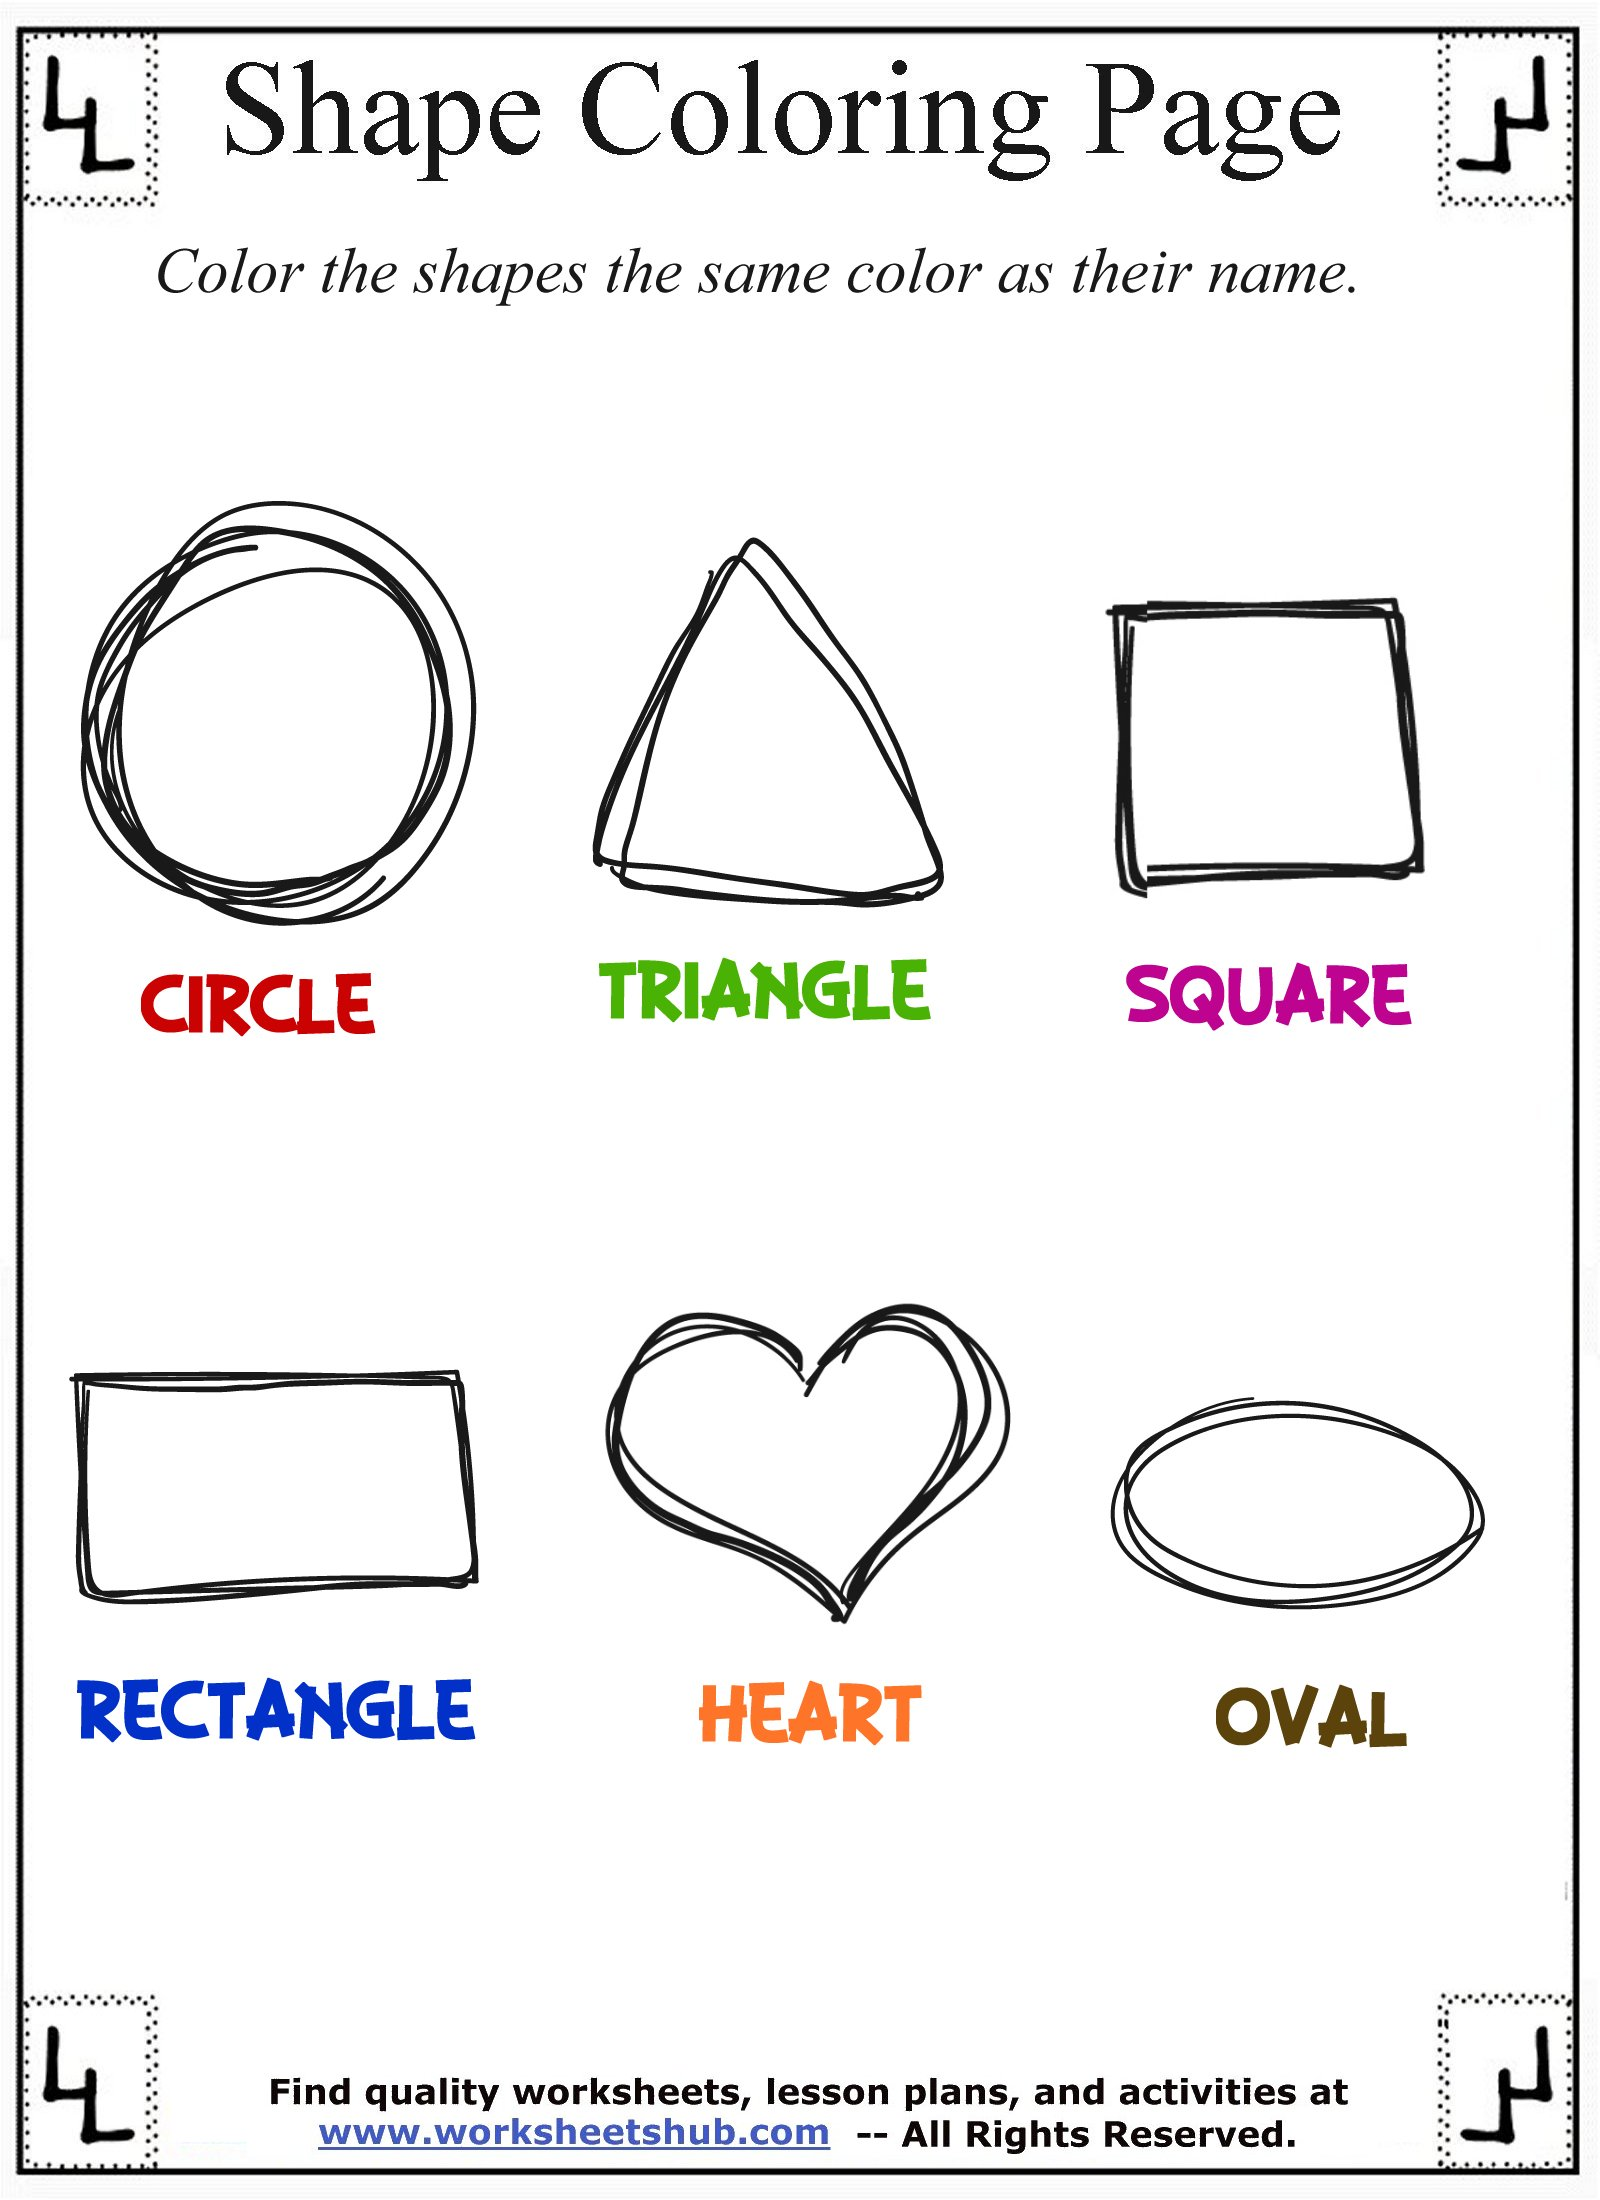 Shape Coloring Pages